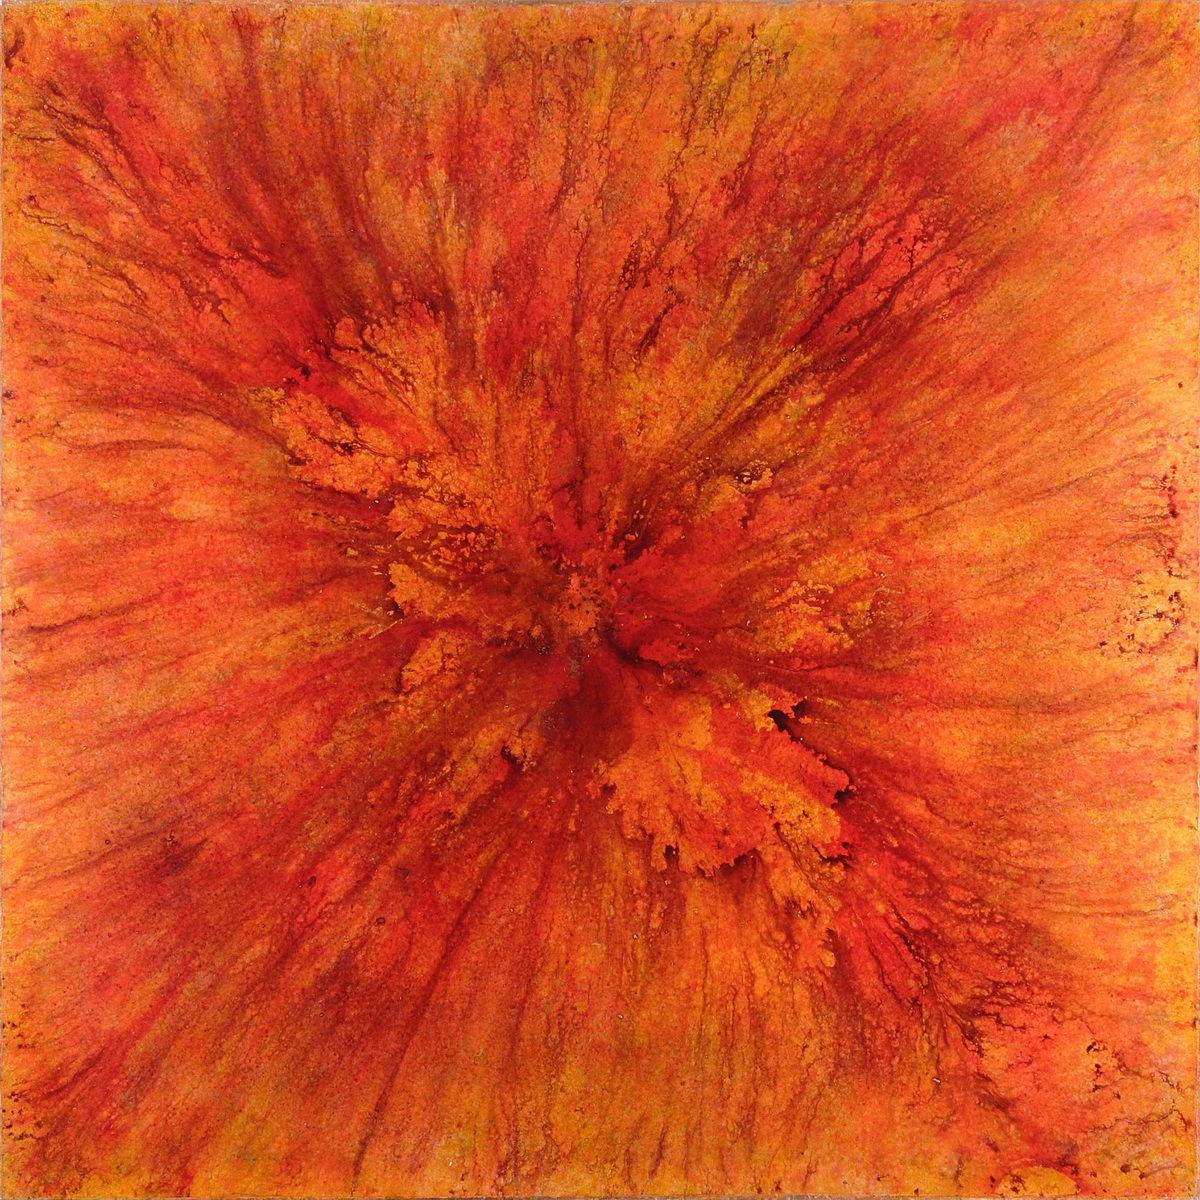 Creation-8-2000-acrylic-on-canvas-200x200-cm-80x80-inches